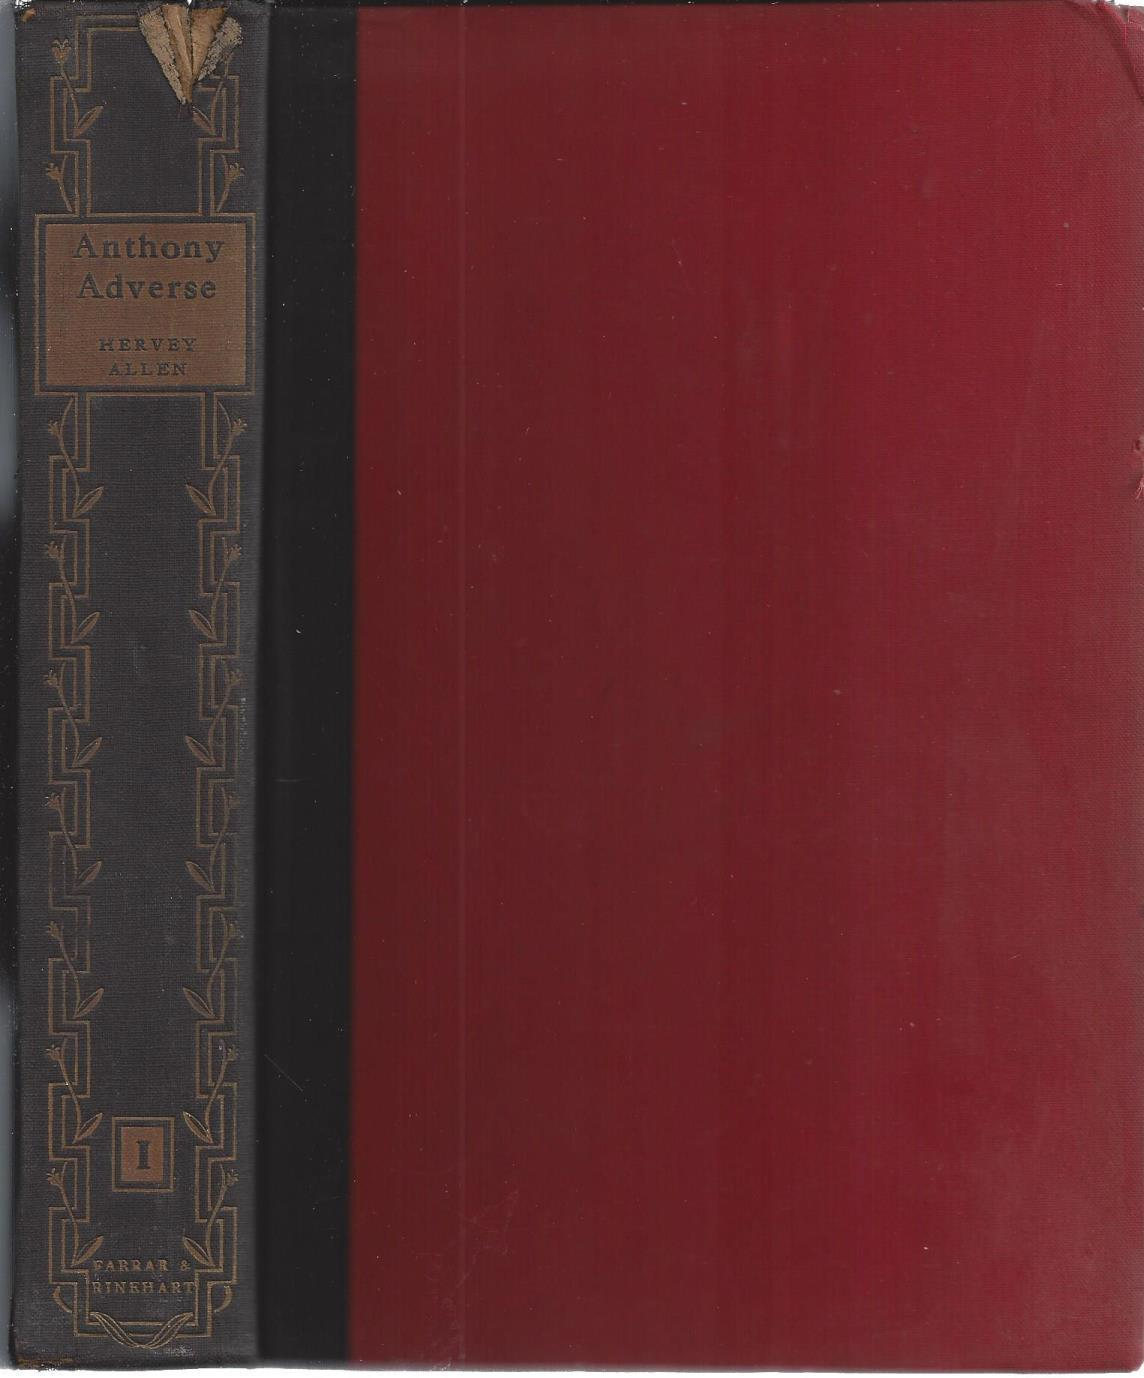 Anthony Adverse (TWO VOLUME SET), Allen, Hervey